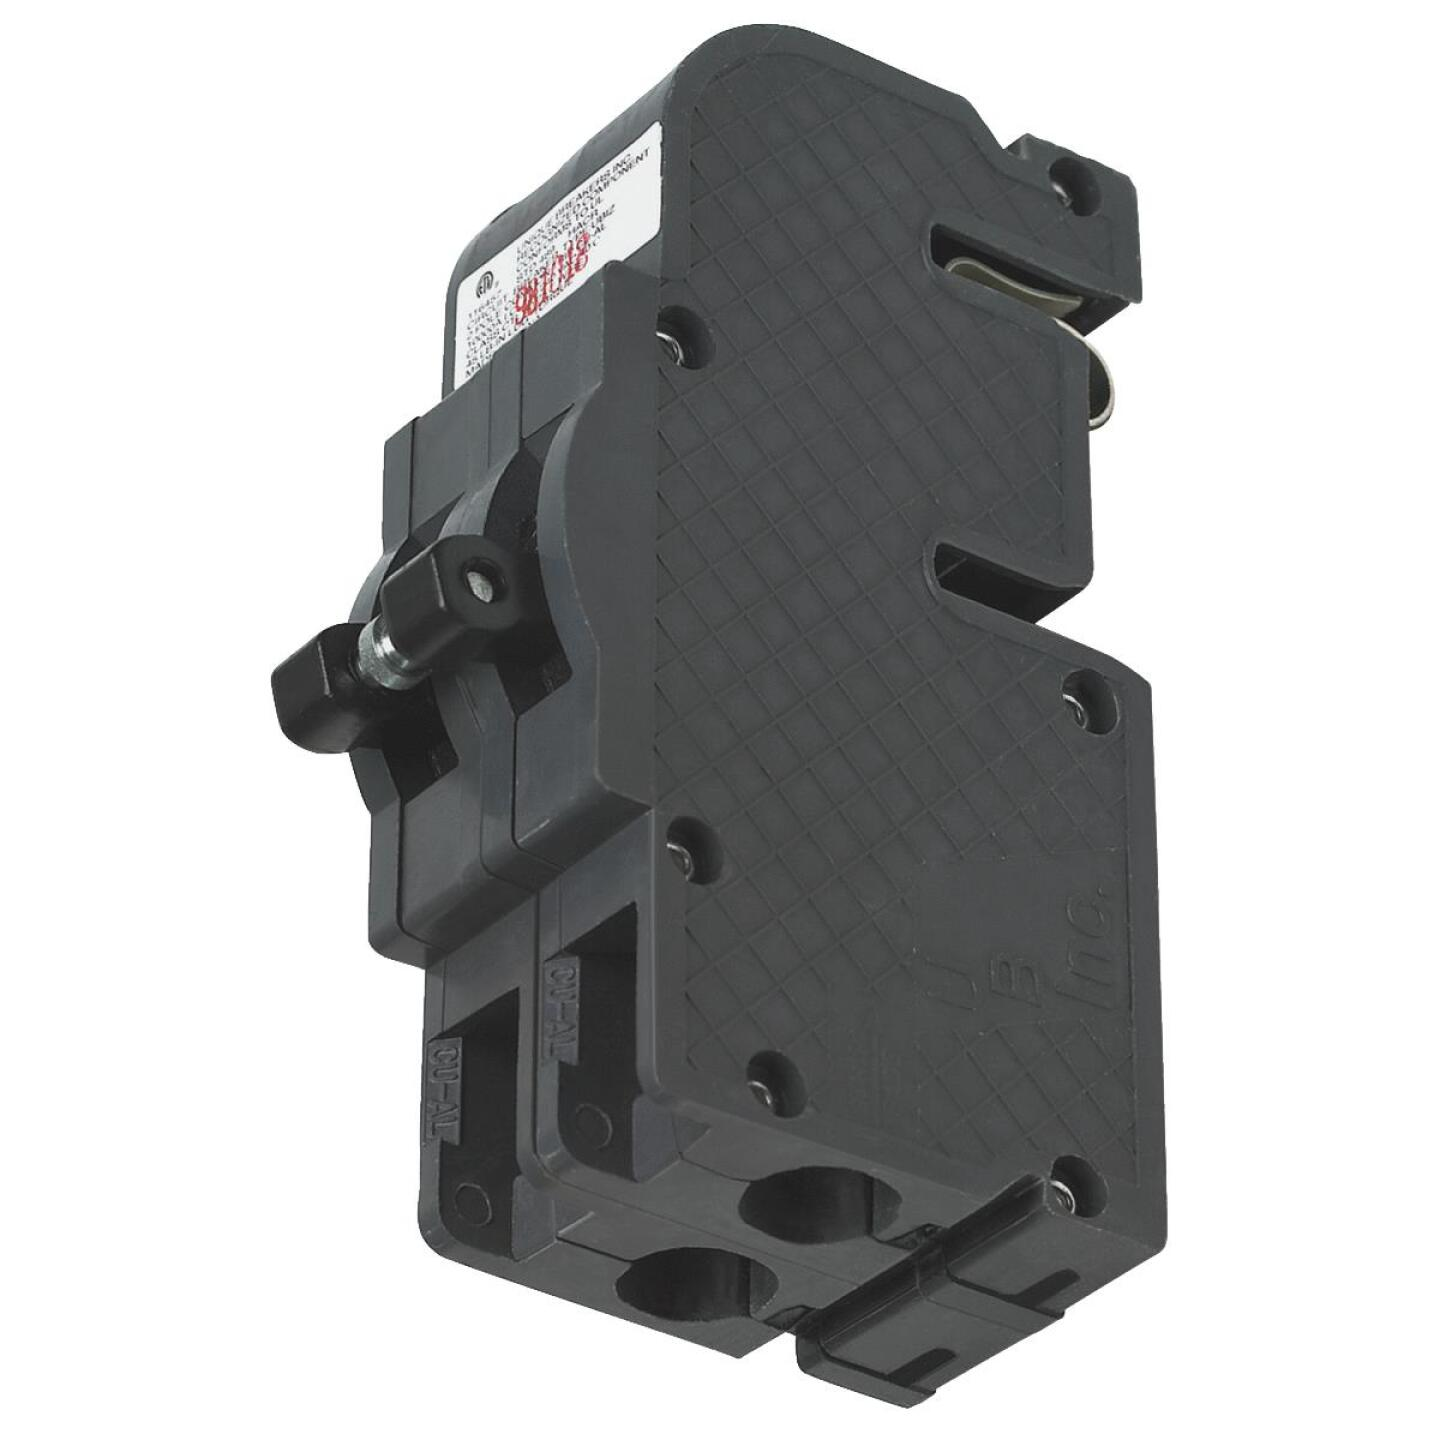 Connecticut Electric 100A Double-Pole Standard Trip Packaged Replacement Circuit Breaker For Zinsco Image 1